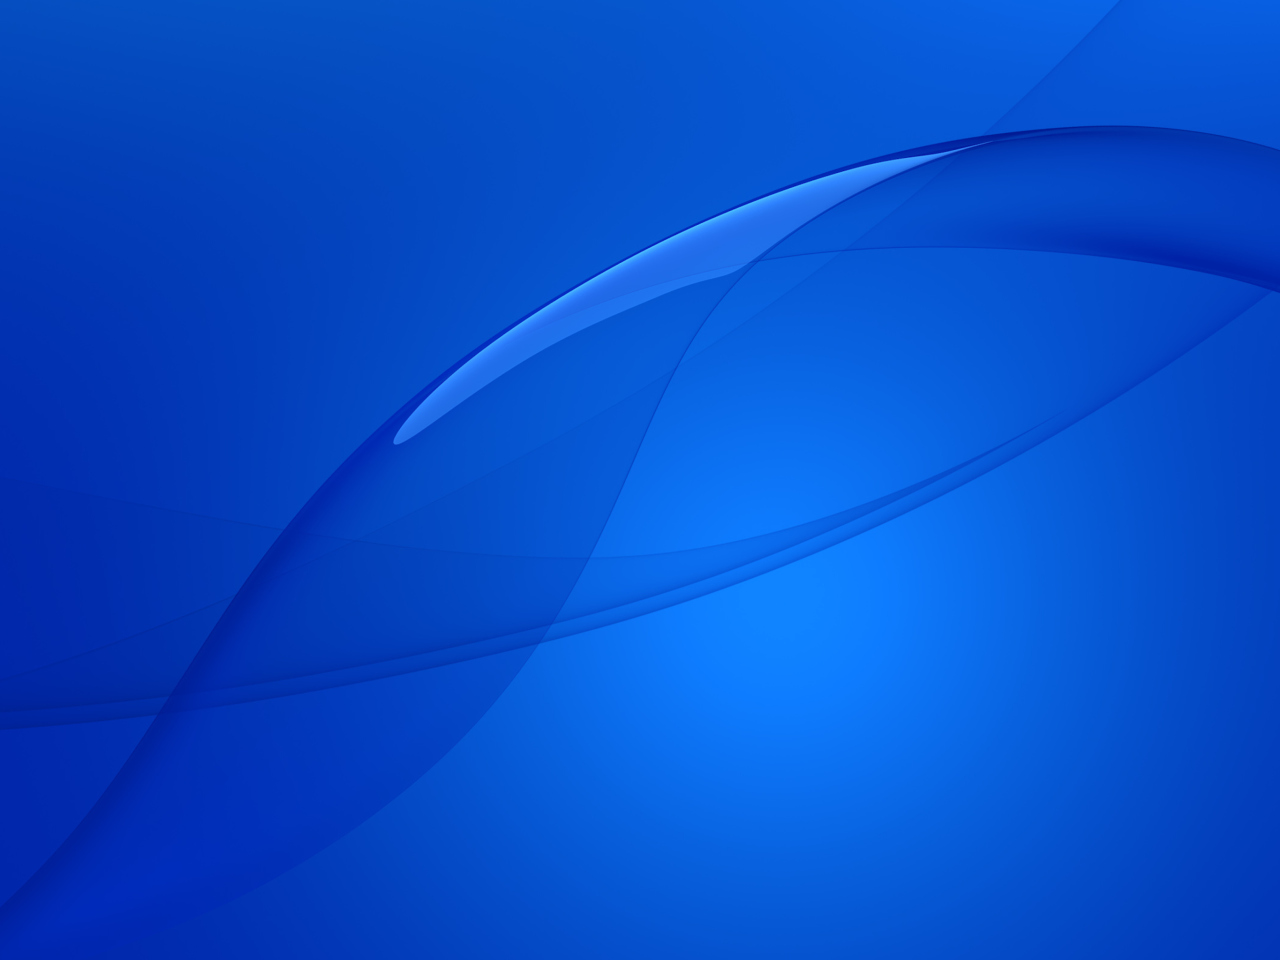 Xperia z wallpaper for desktop